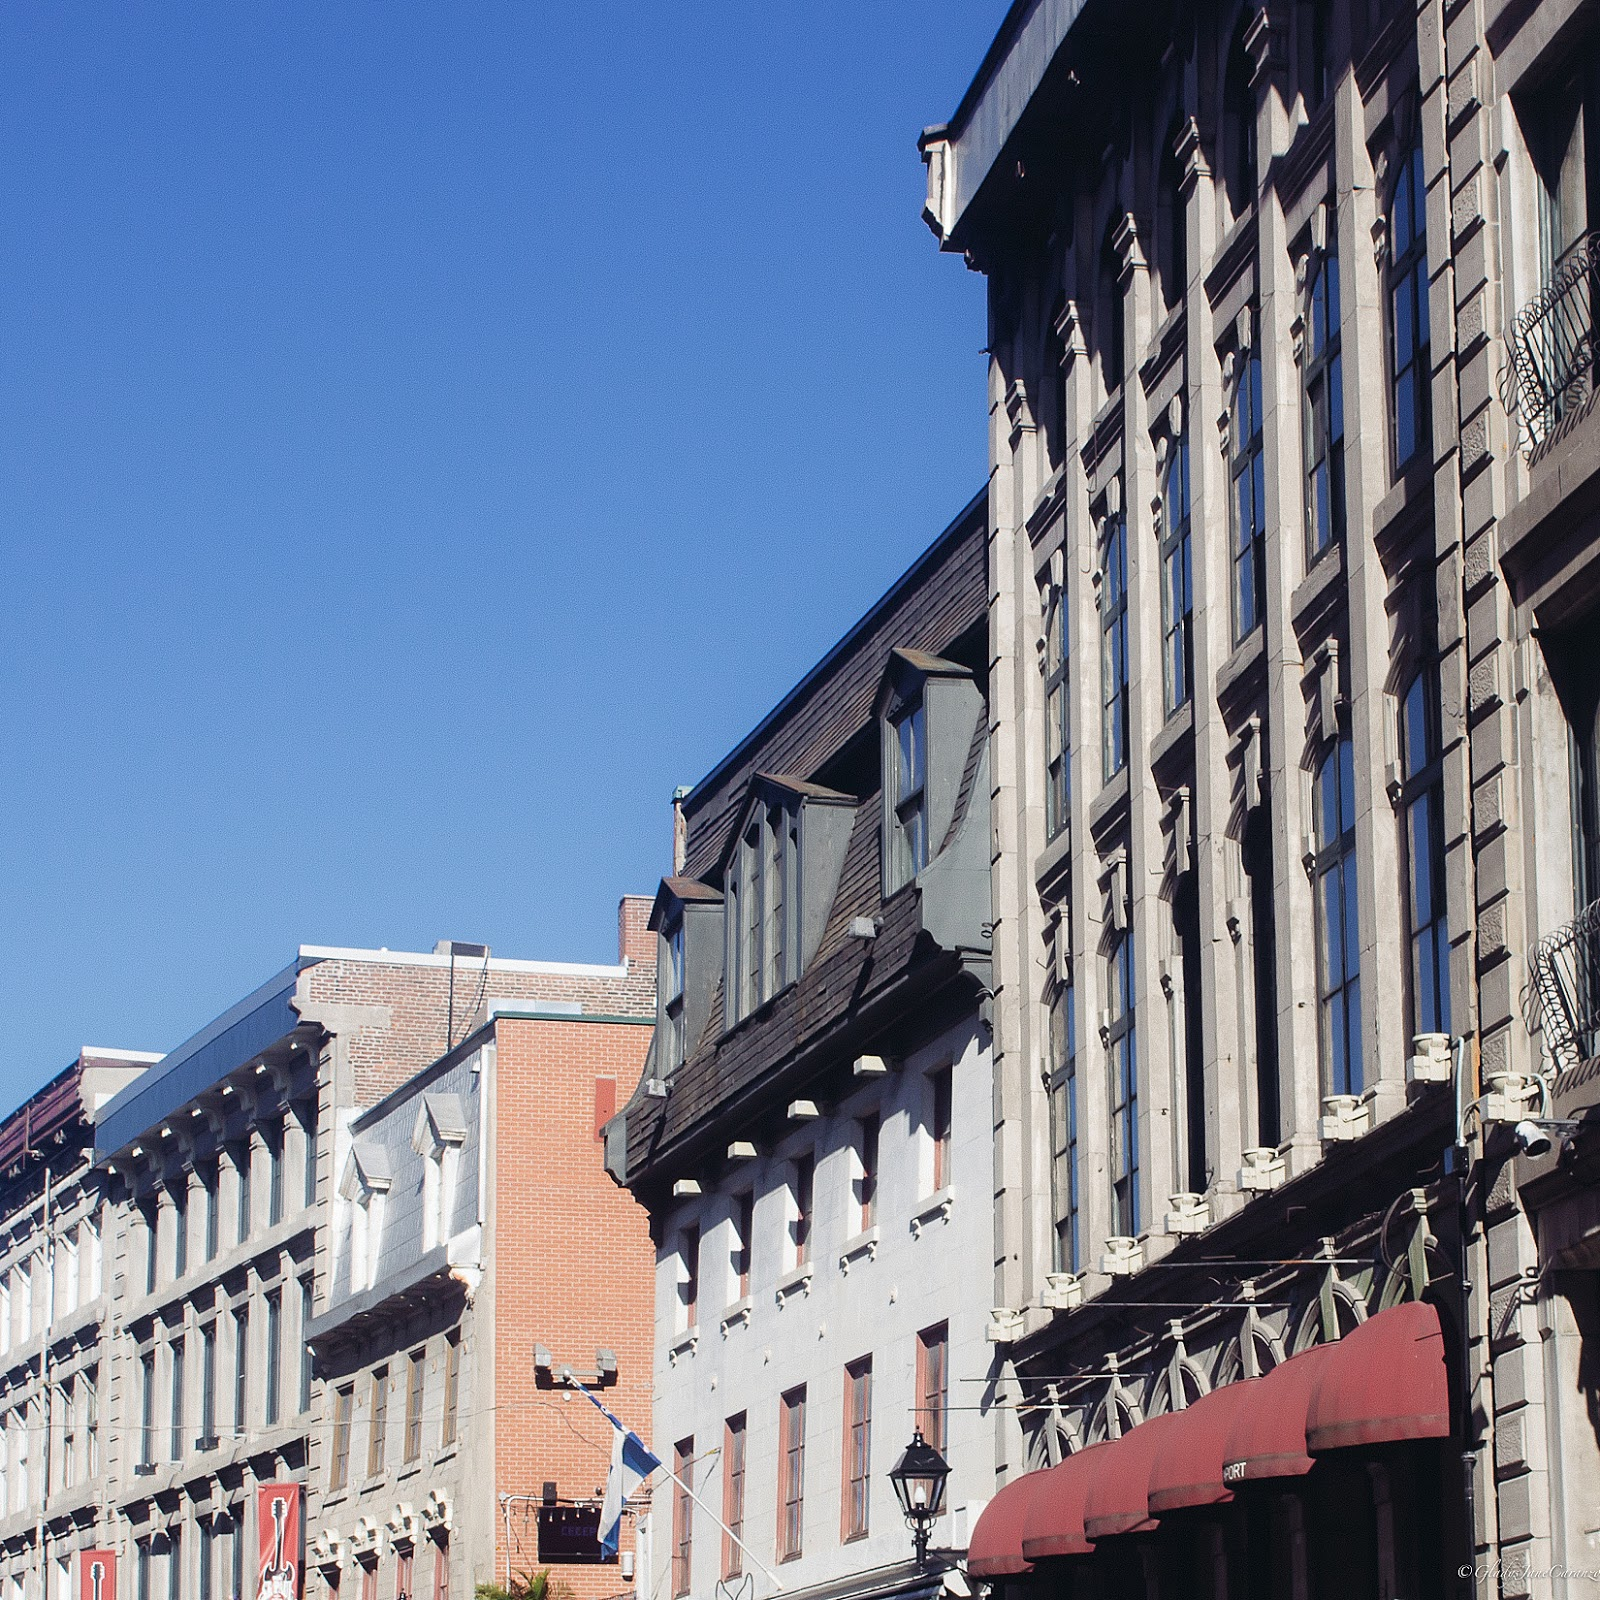 Vieux (Old) Montreal: Things To Do in Montreal